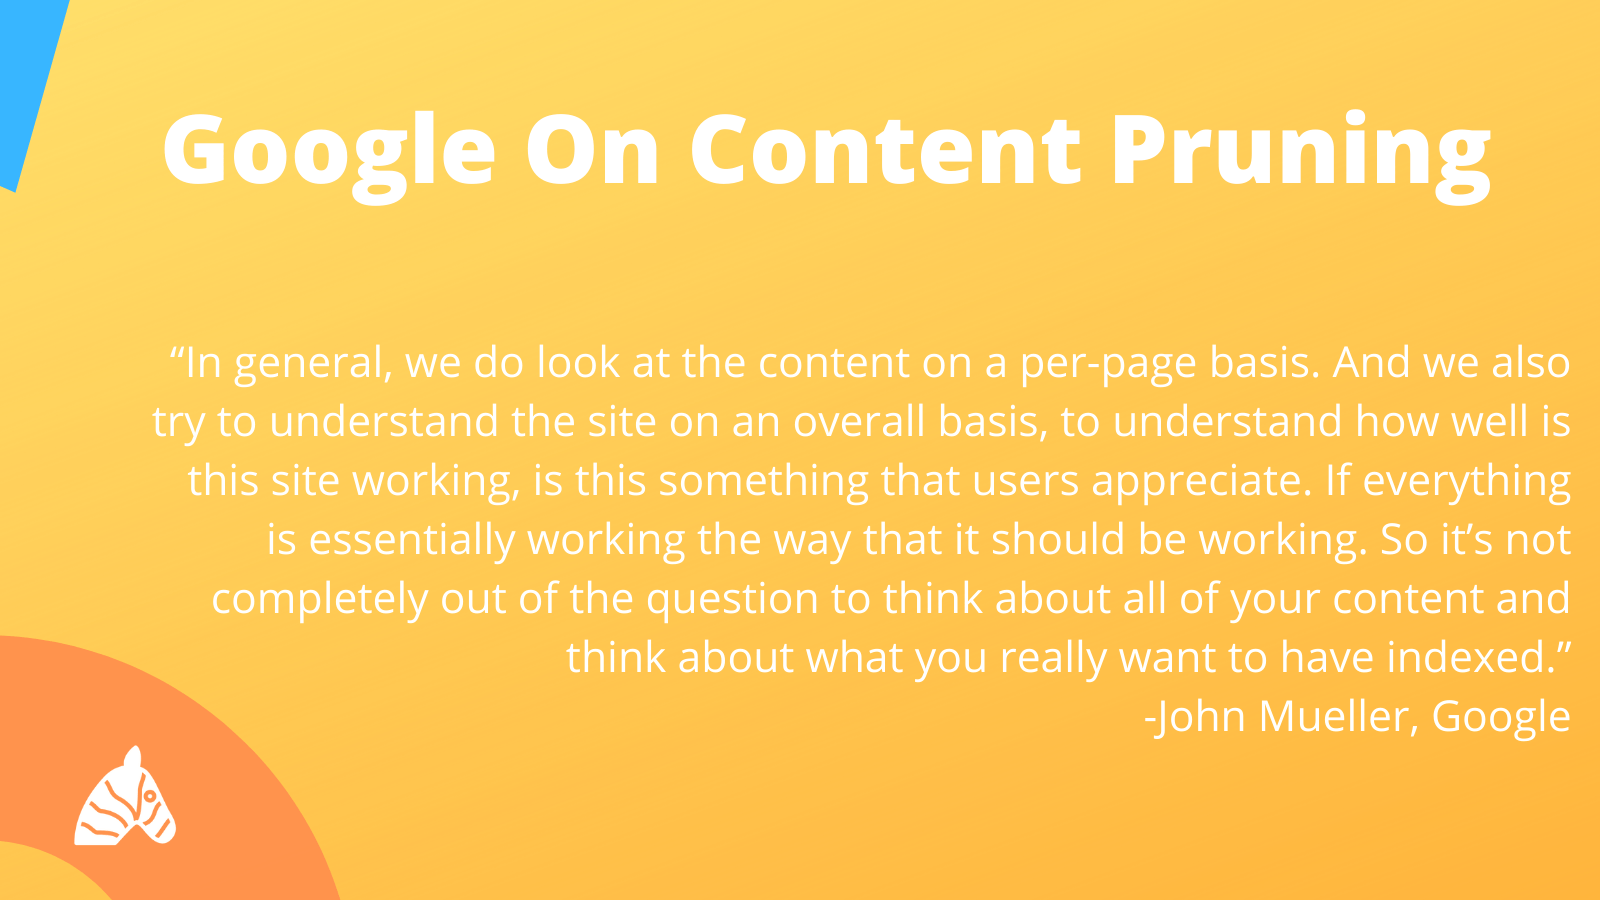 Google on Content Pruning in the context of SEO